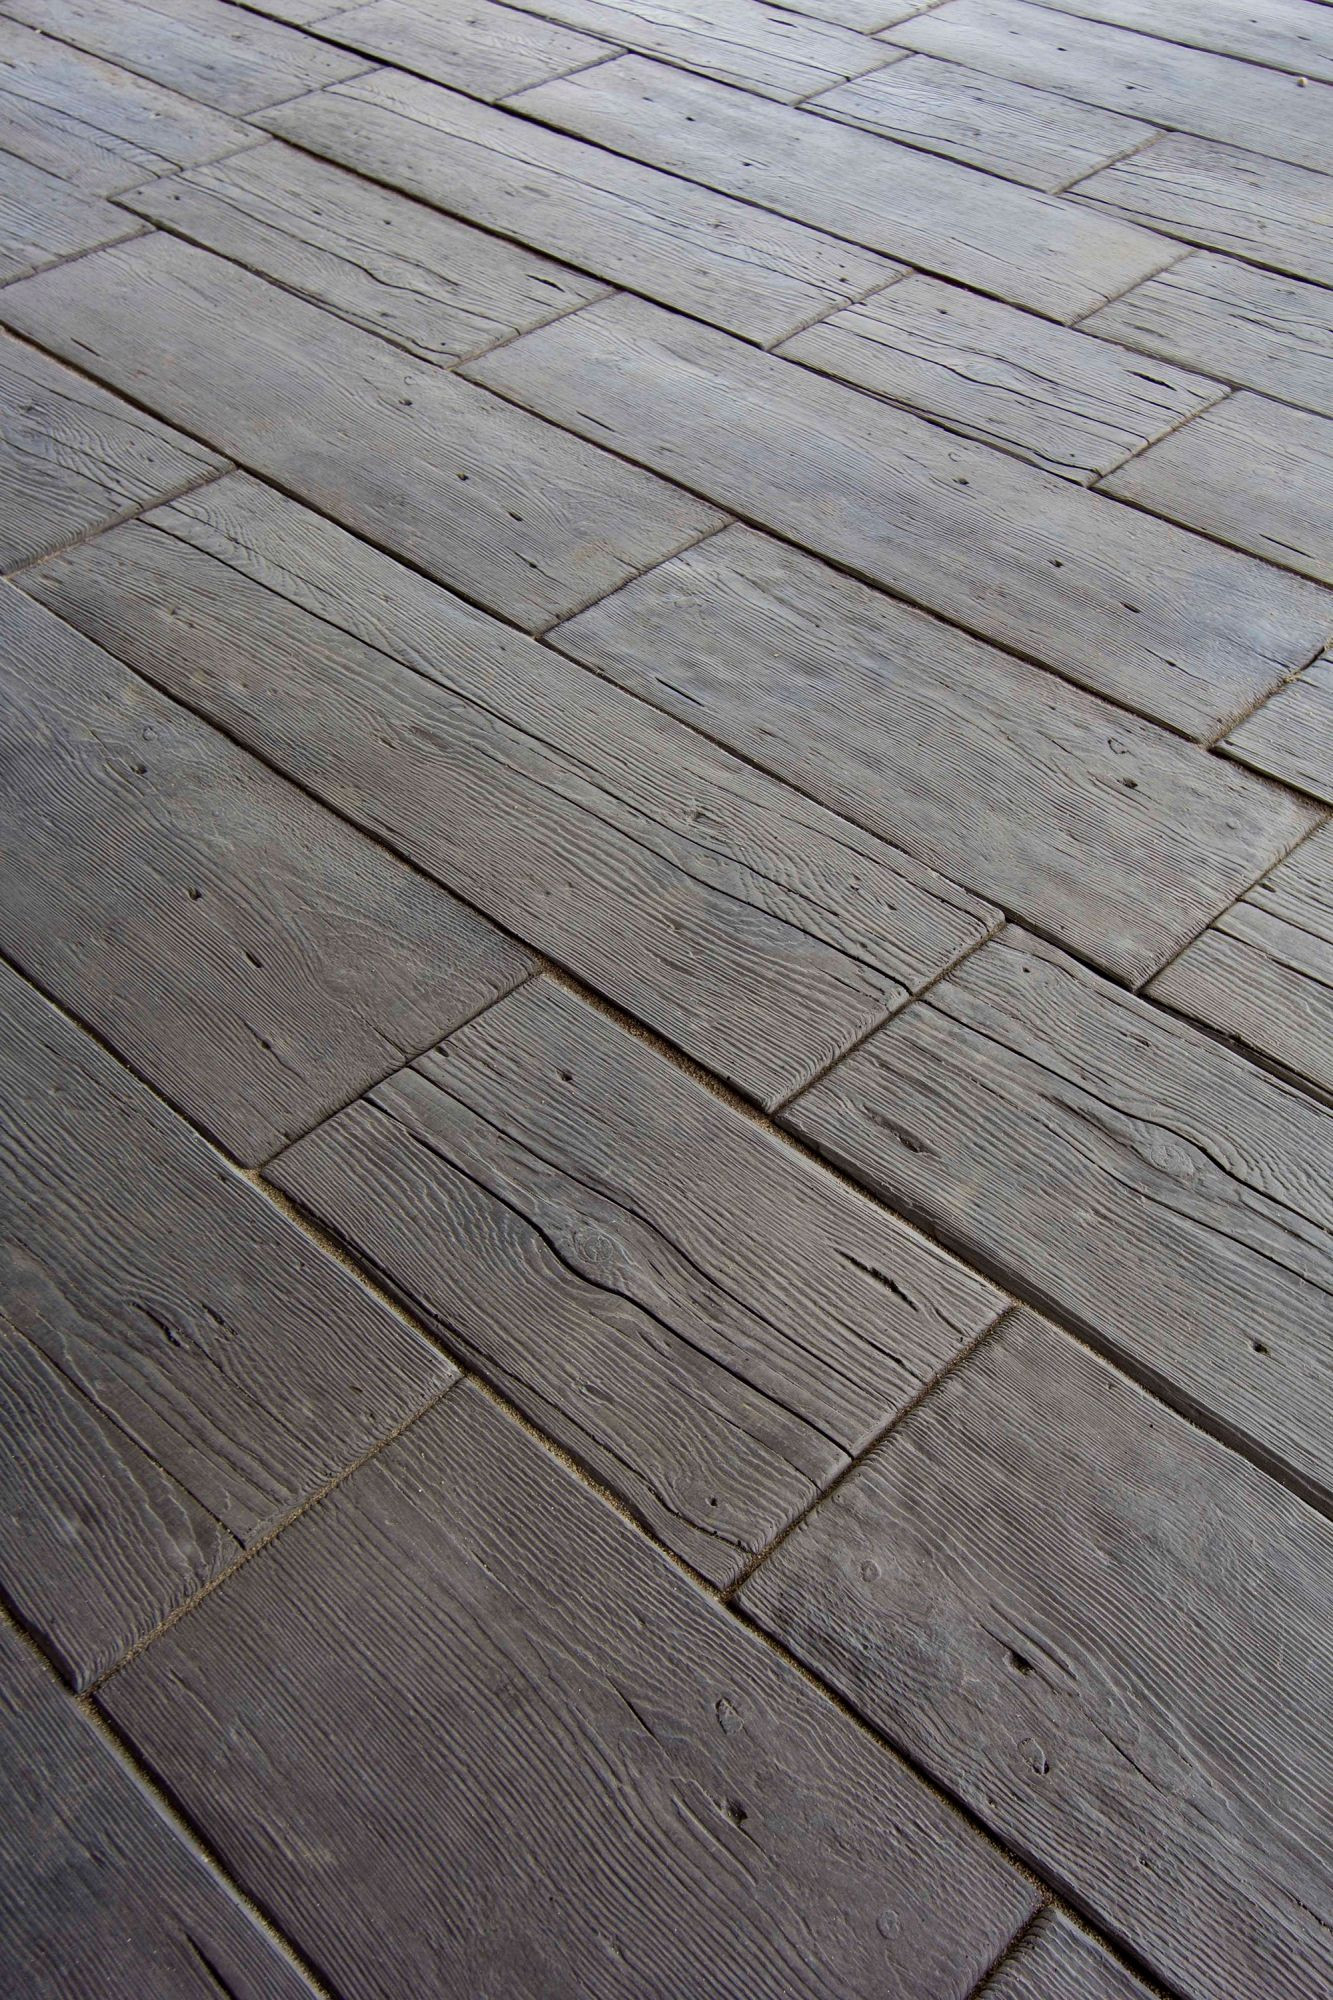 hardwood floor suppliers denver of rustic wood nope 2 thick concrete pavers barn plank landscape throughout rustic wood nope 2 thick concrete pavers barn plank landscape tile by silver creek stoneworks rochester mn ideal for outdoor paths decks etc